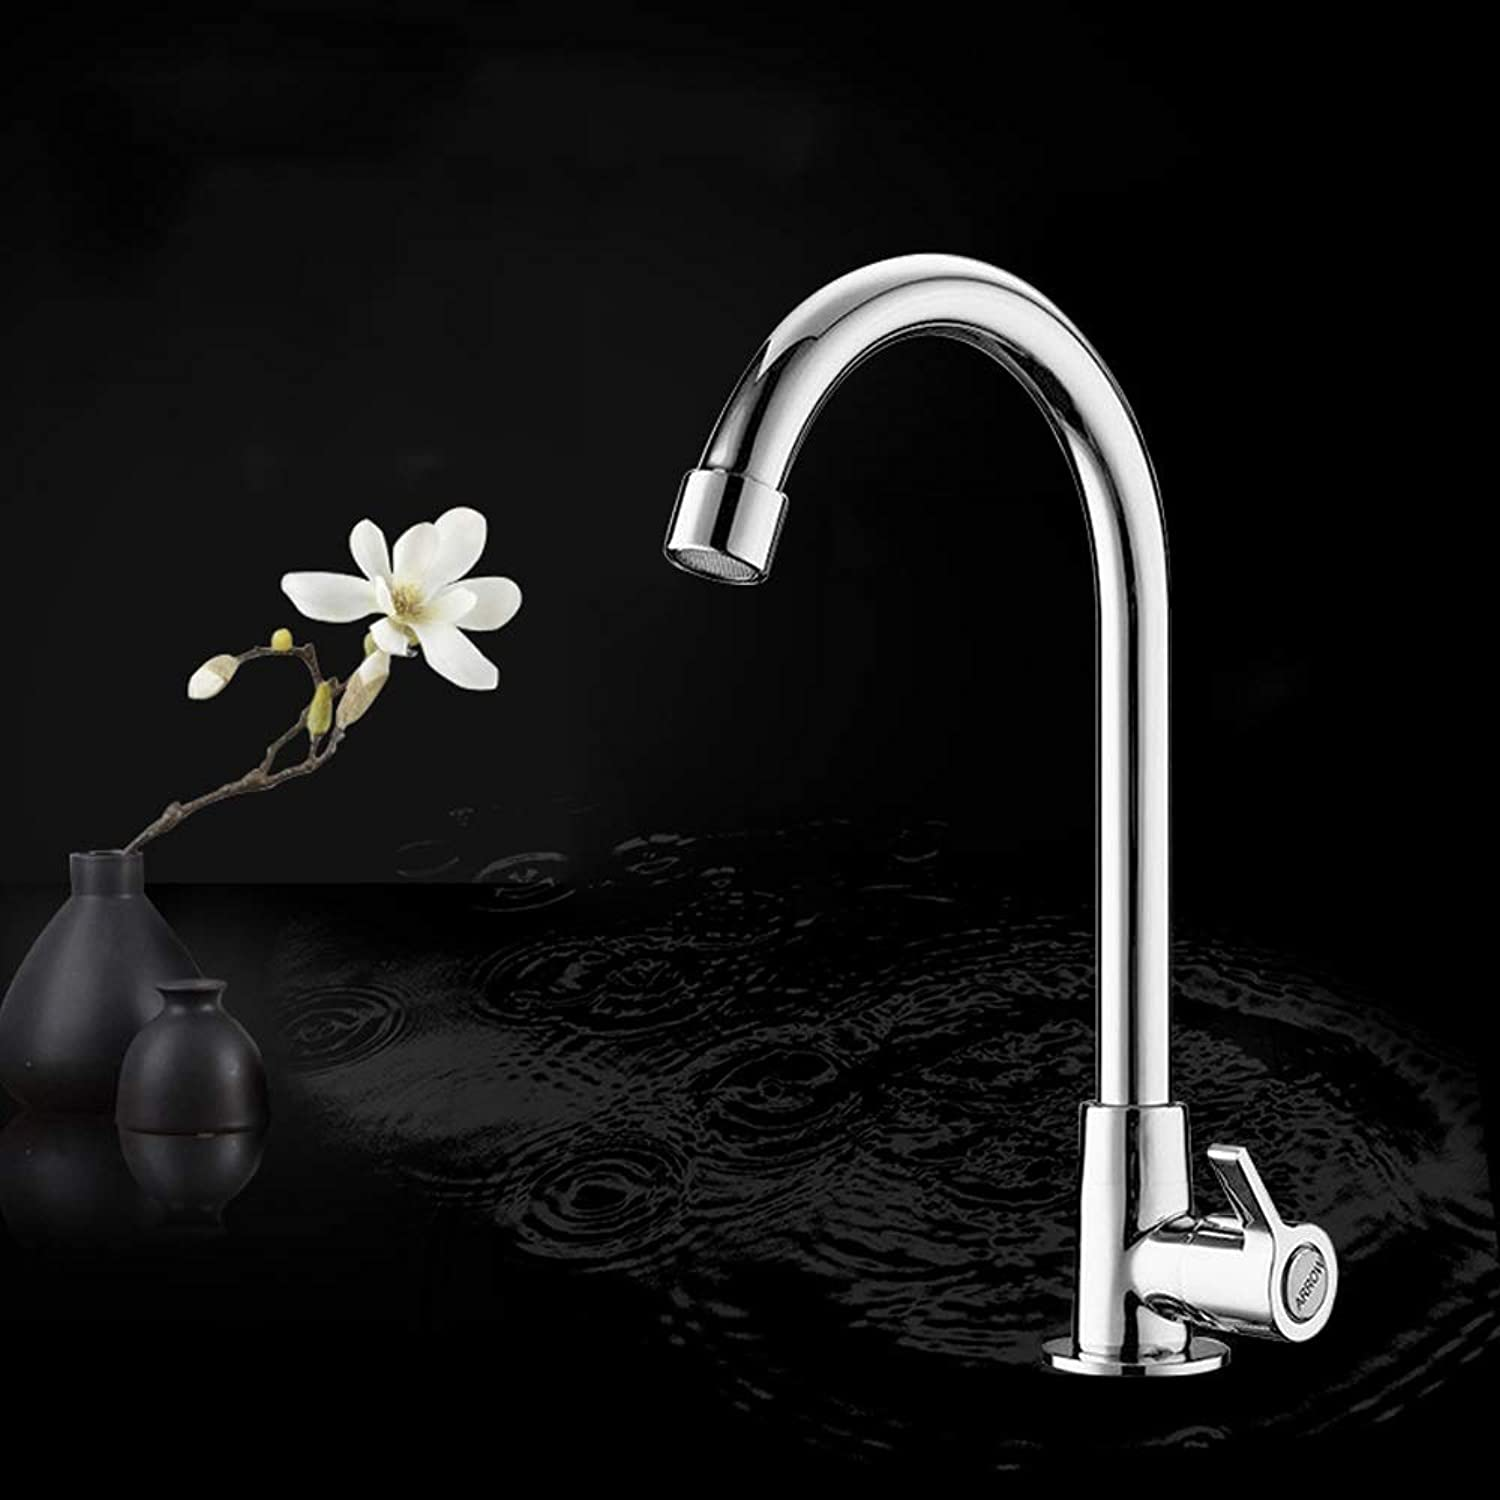 WOOMD Kitchen Sink Single Cold Water Long Washbasin Faucet Faucet Modern Commercial Lead-free Modern Stainless Steel One-handle Kitchen Faucet Kitchen Sink Faucet Kitchen Faucet